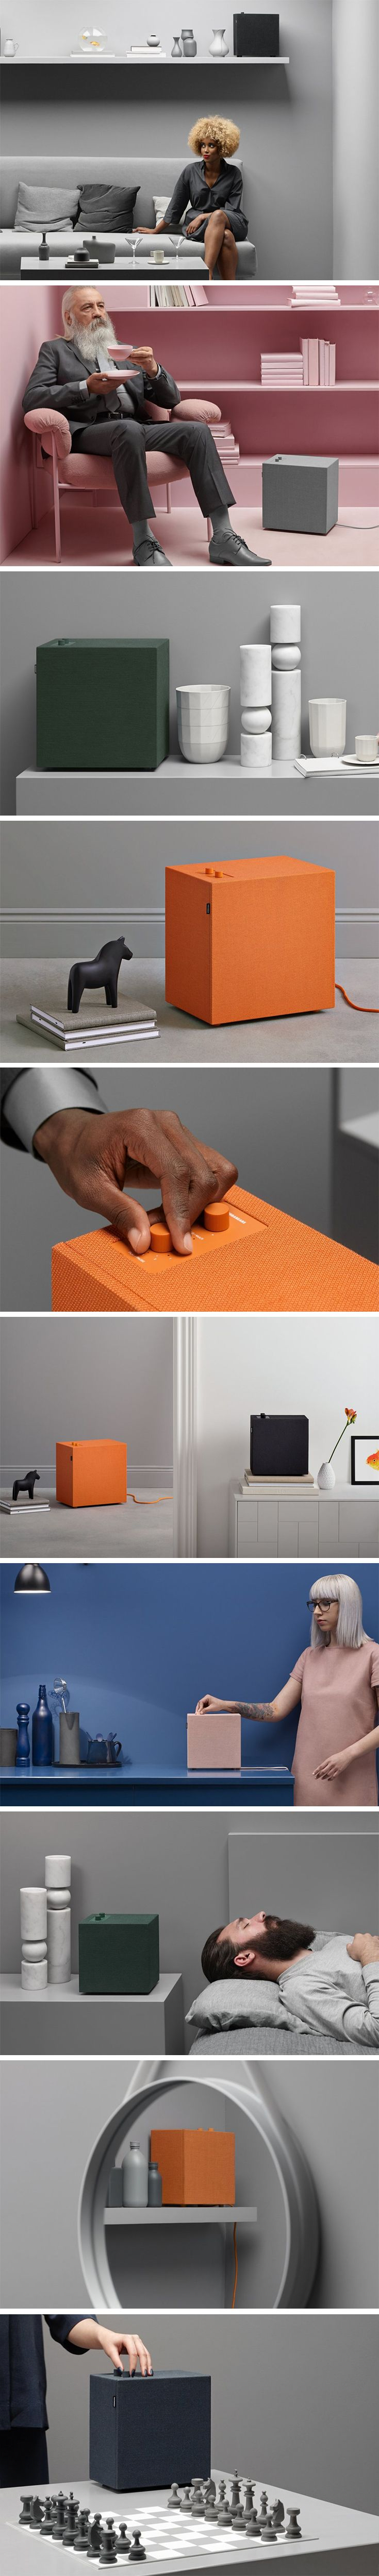 With the increasing abilities of home assistants like Google Home and Amazon Echo, the masses are flocking towards this all-in-one audio system trend. Stammen and Baggen, the two connected wireless speakers developed by Swedish audio company Urbanears are connected through Wi-Fi and Bluetooth, a different mood can be set in each room or equally, the speakers can be grouped for synchronized listening. BUY NOW!